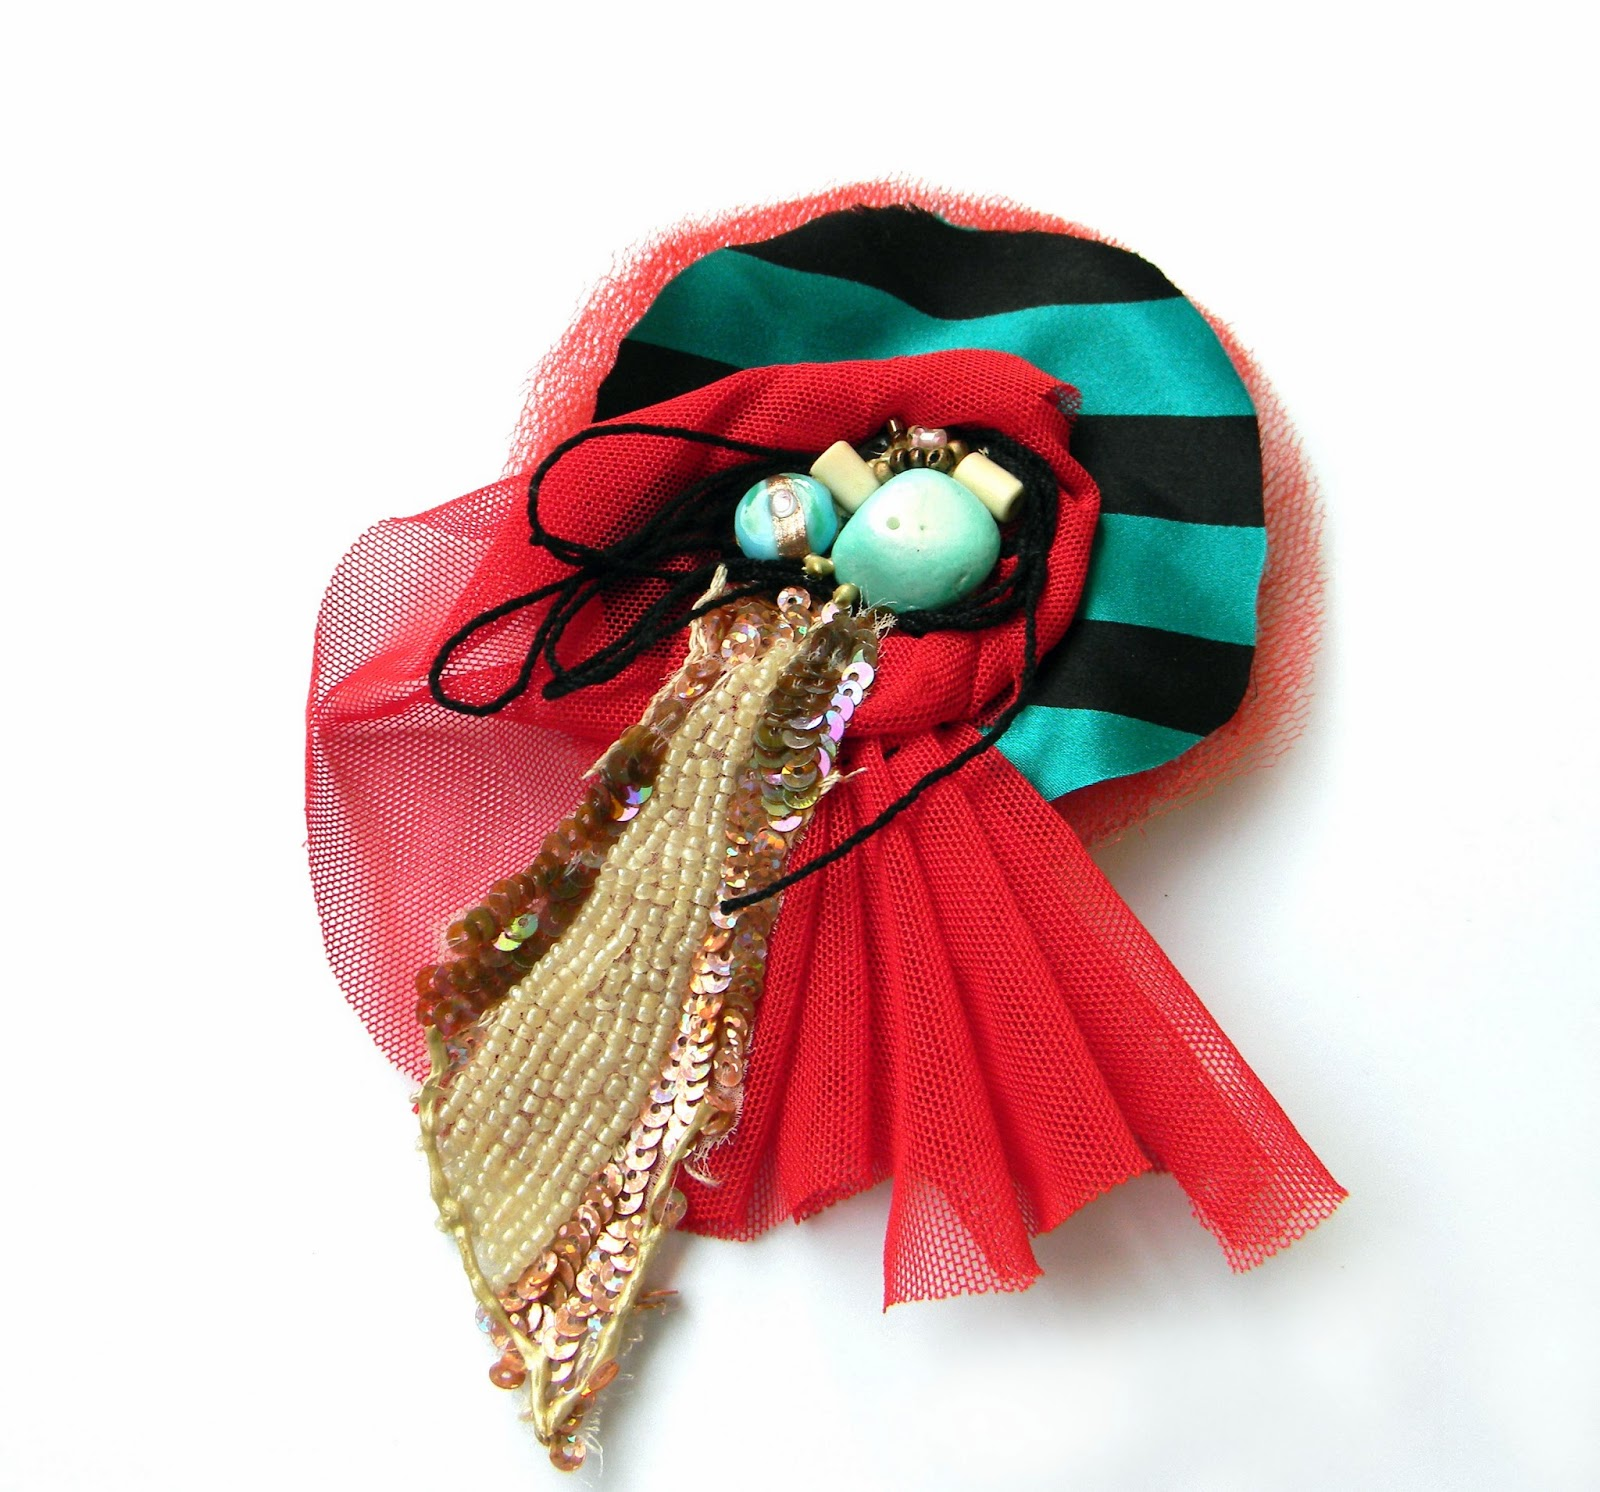 Textile Fashion Brooch with Beads Applique and Embroidered Sequins in Aqua Blue and Fire Red